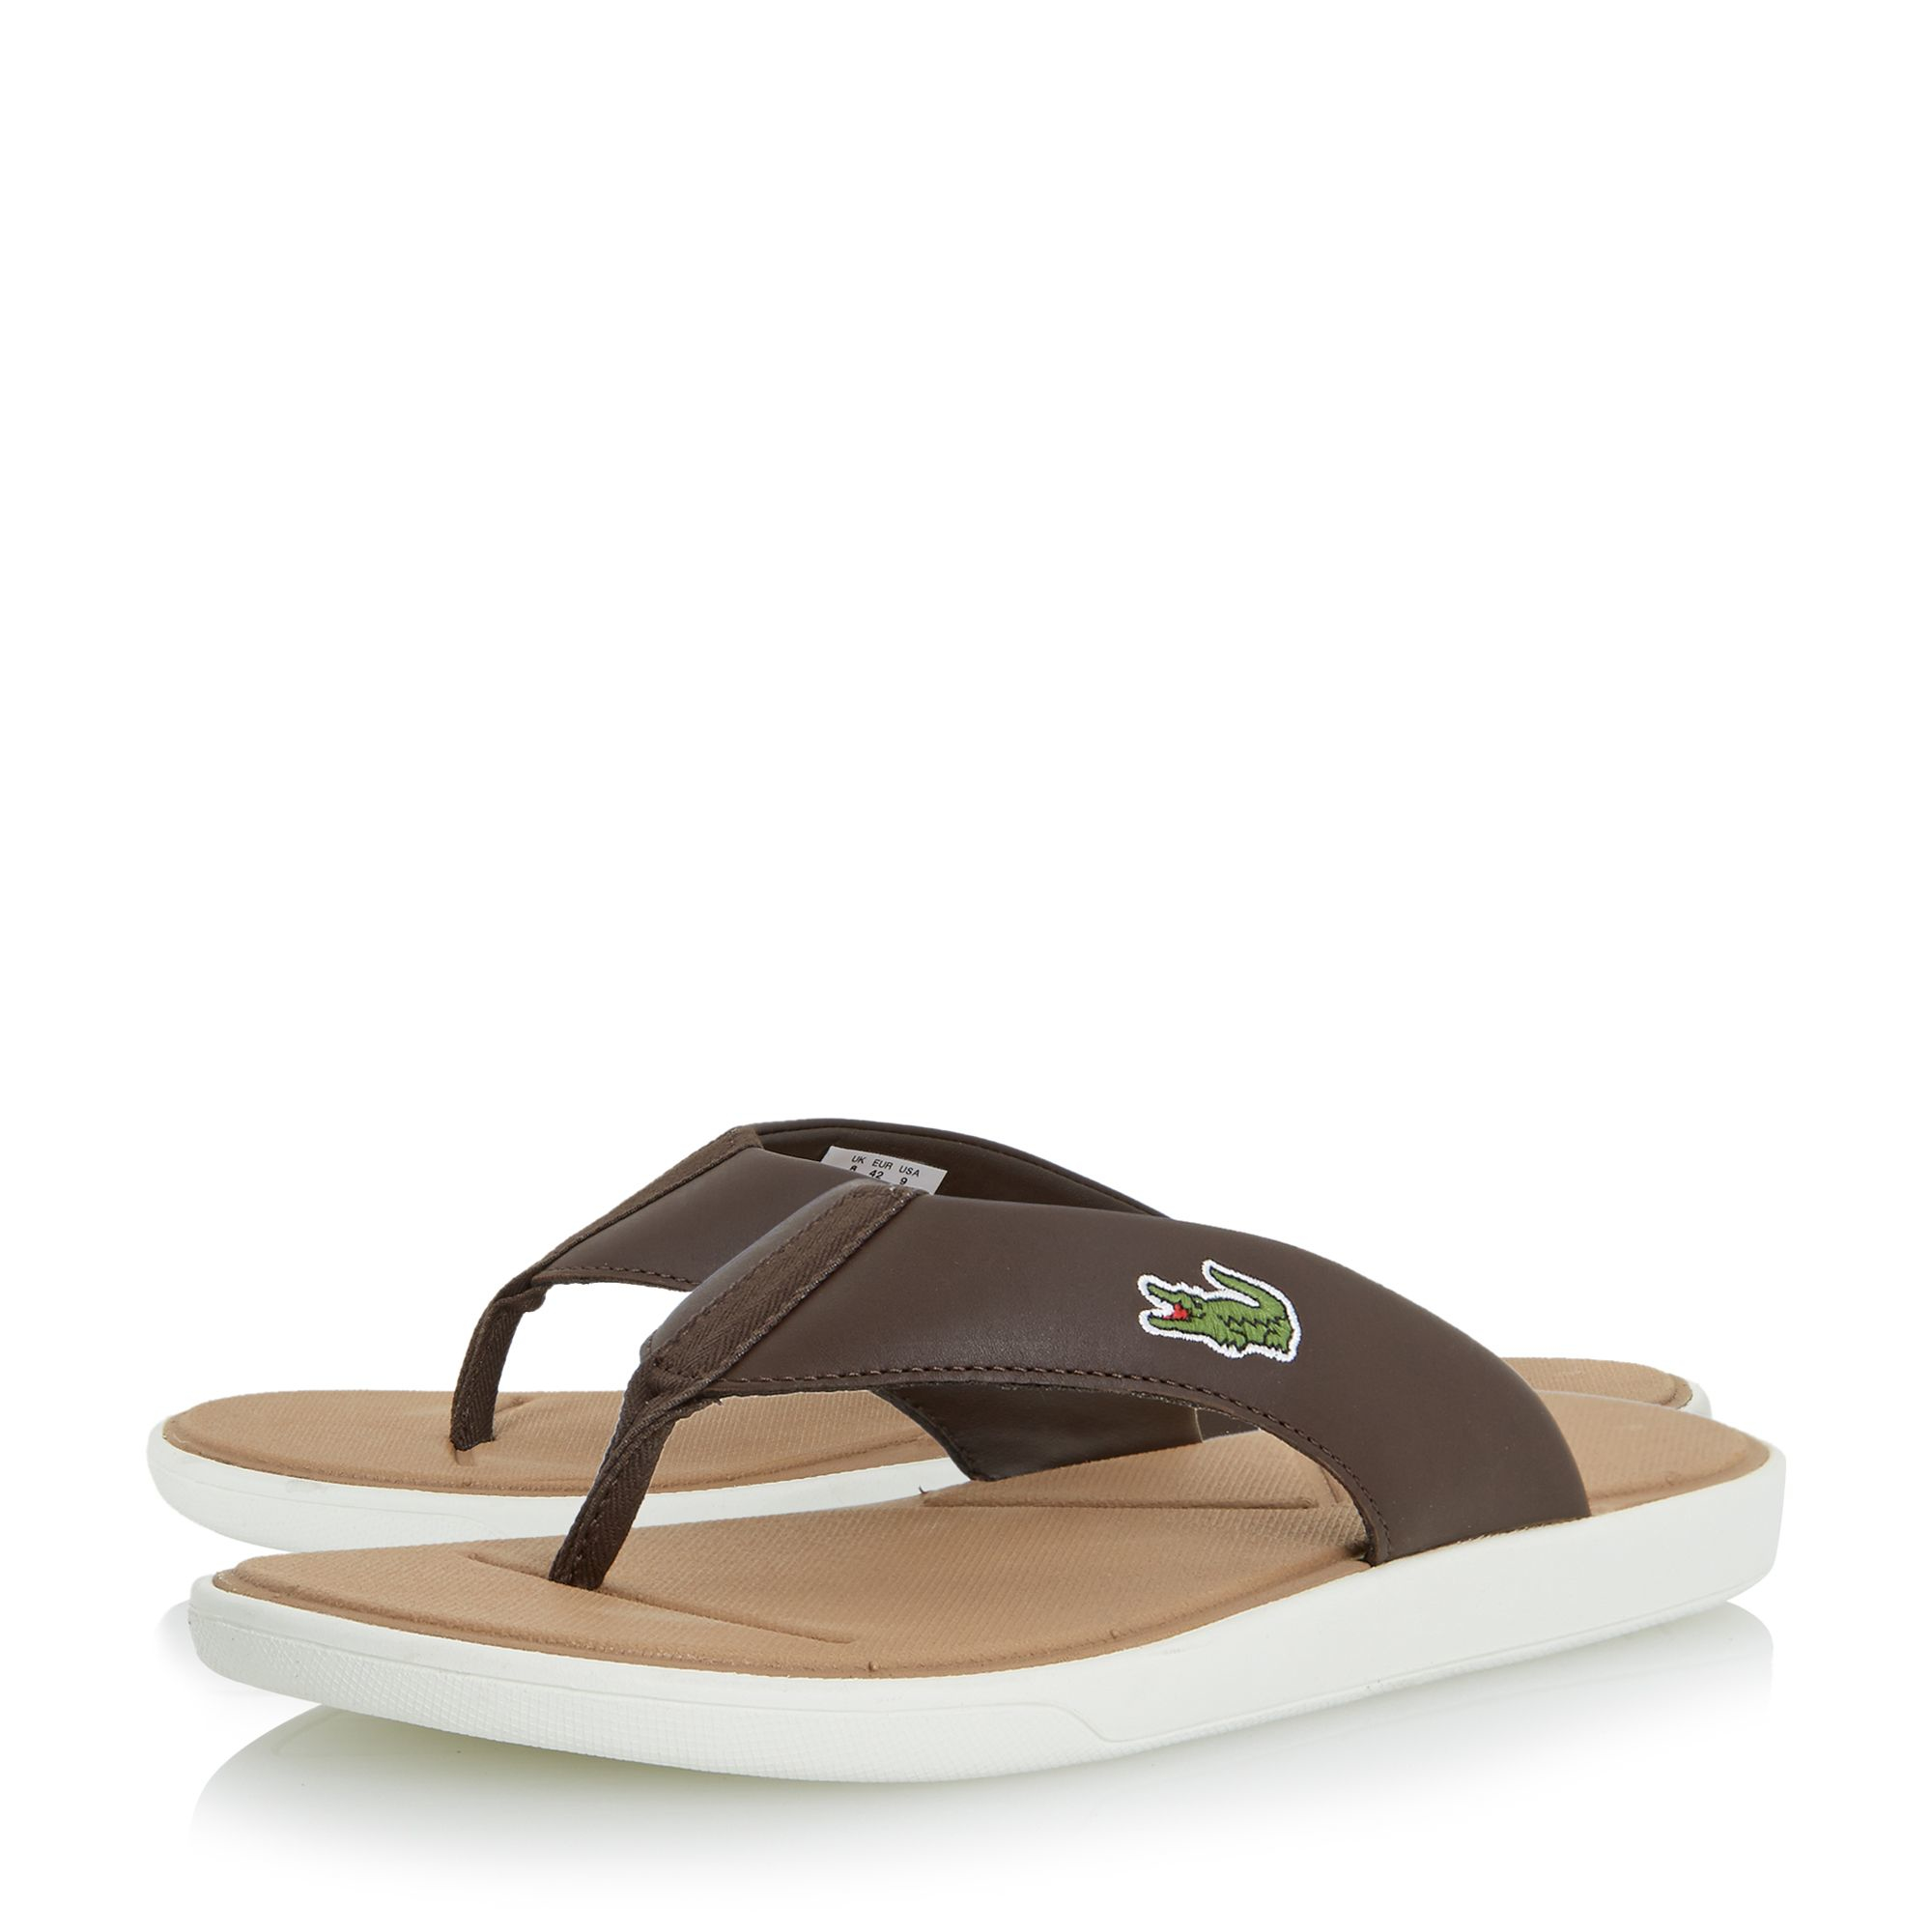 Lacoste L30 Leather Toe Post Flip Flops In Brown For Men -5911